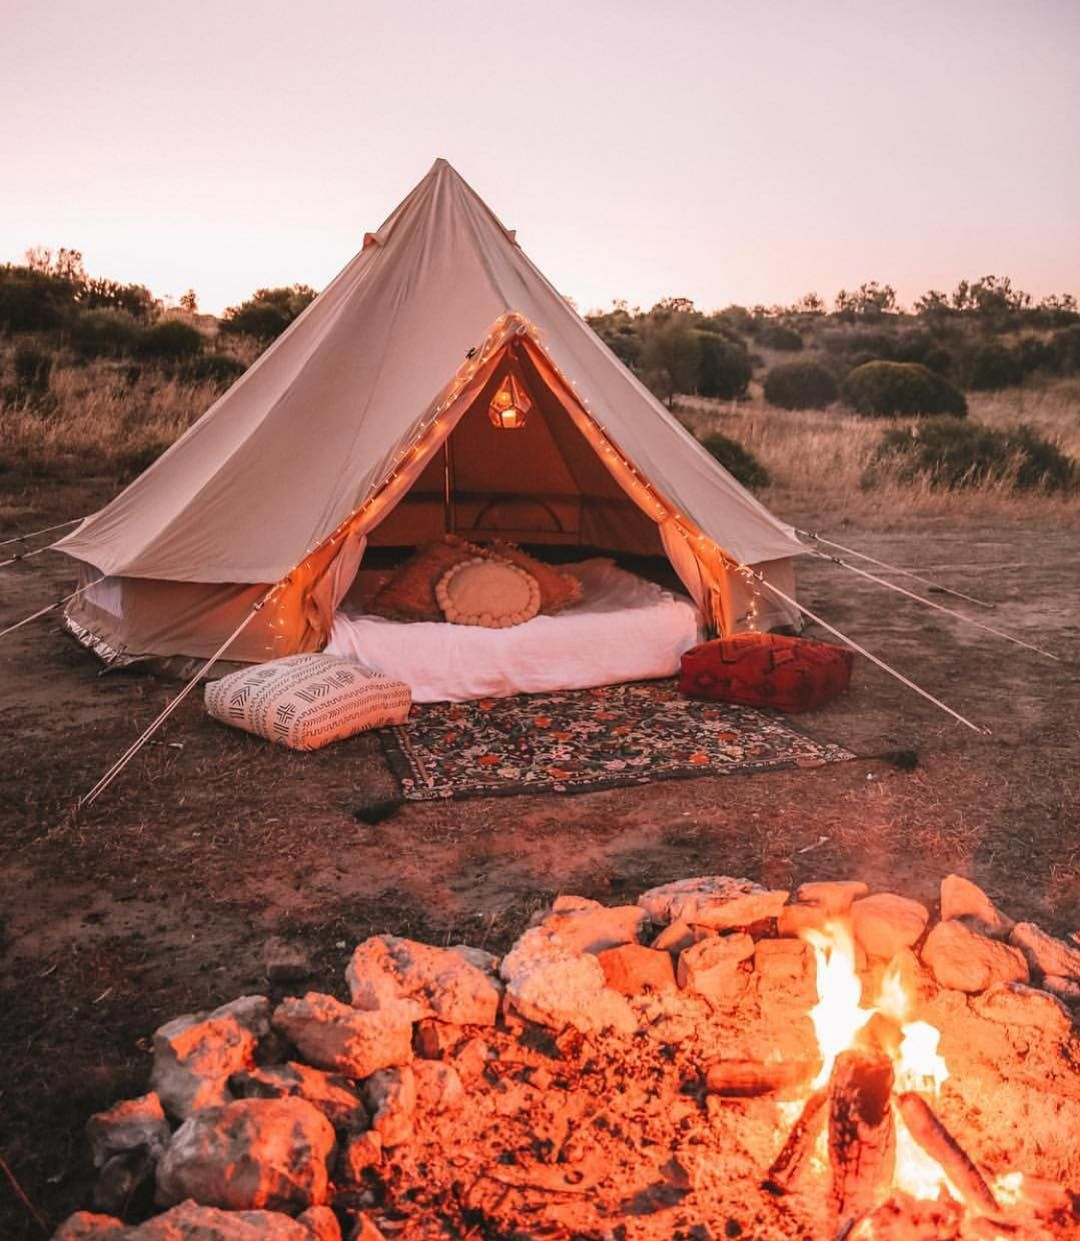 Weekend goals right there | Tent, Bell tent, Romantic camping